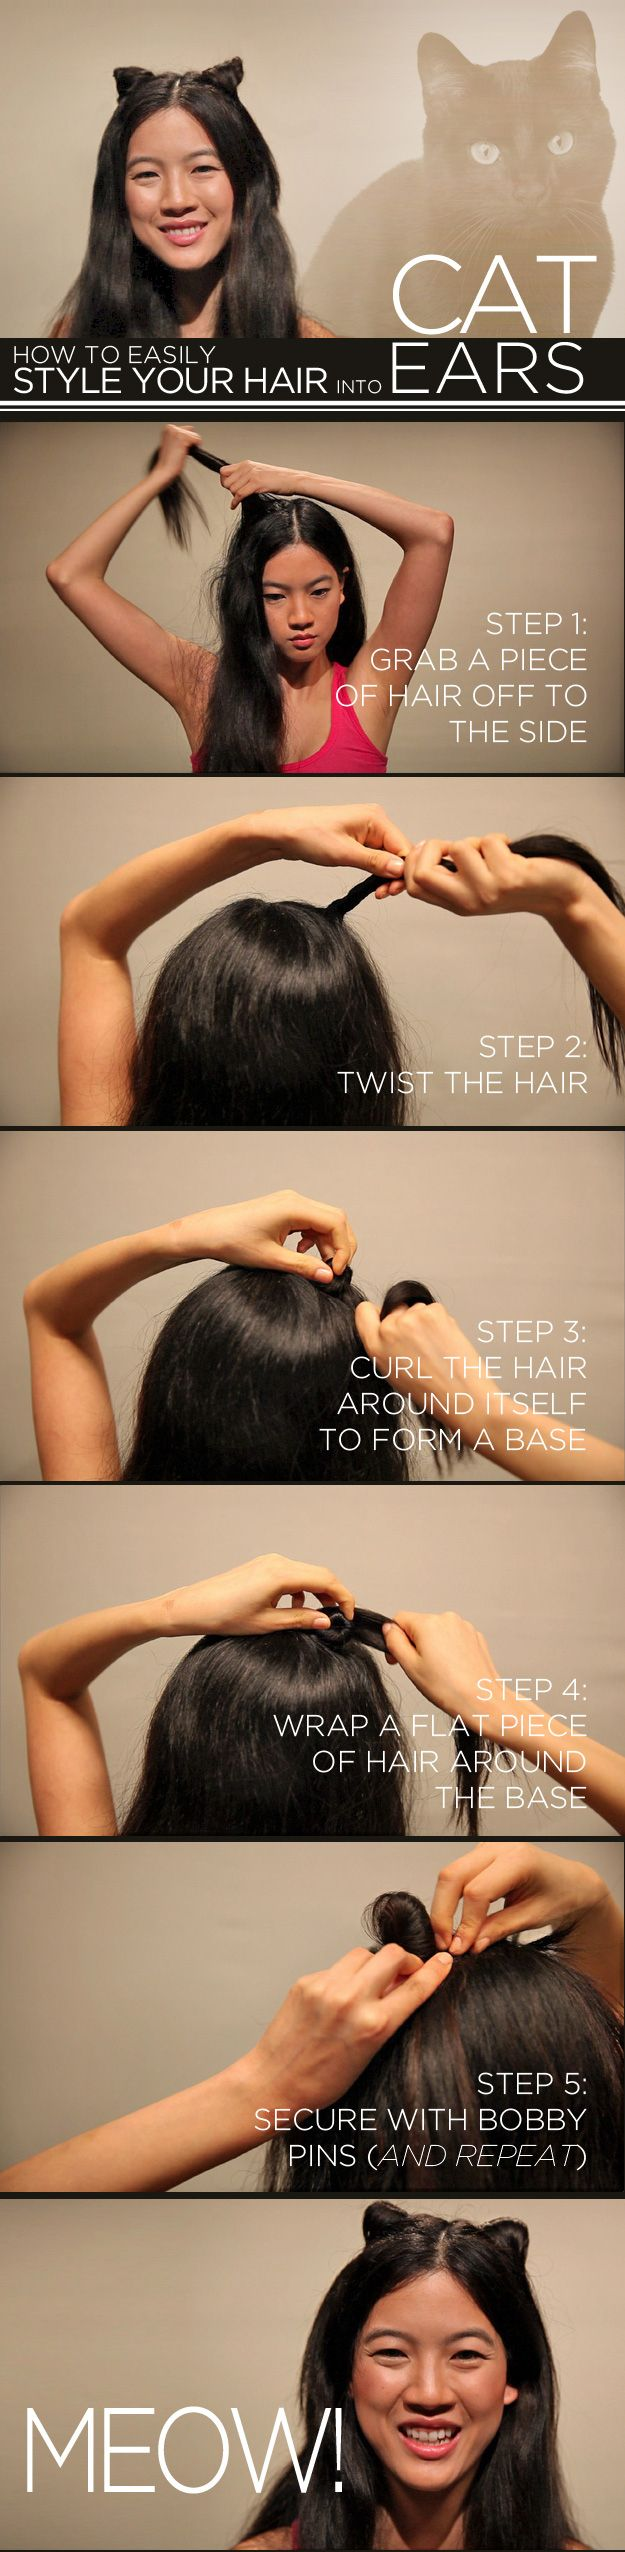 Turn your hair into cat ears!